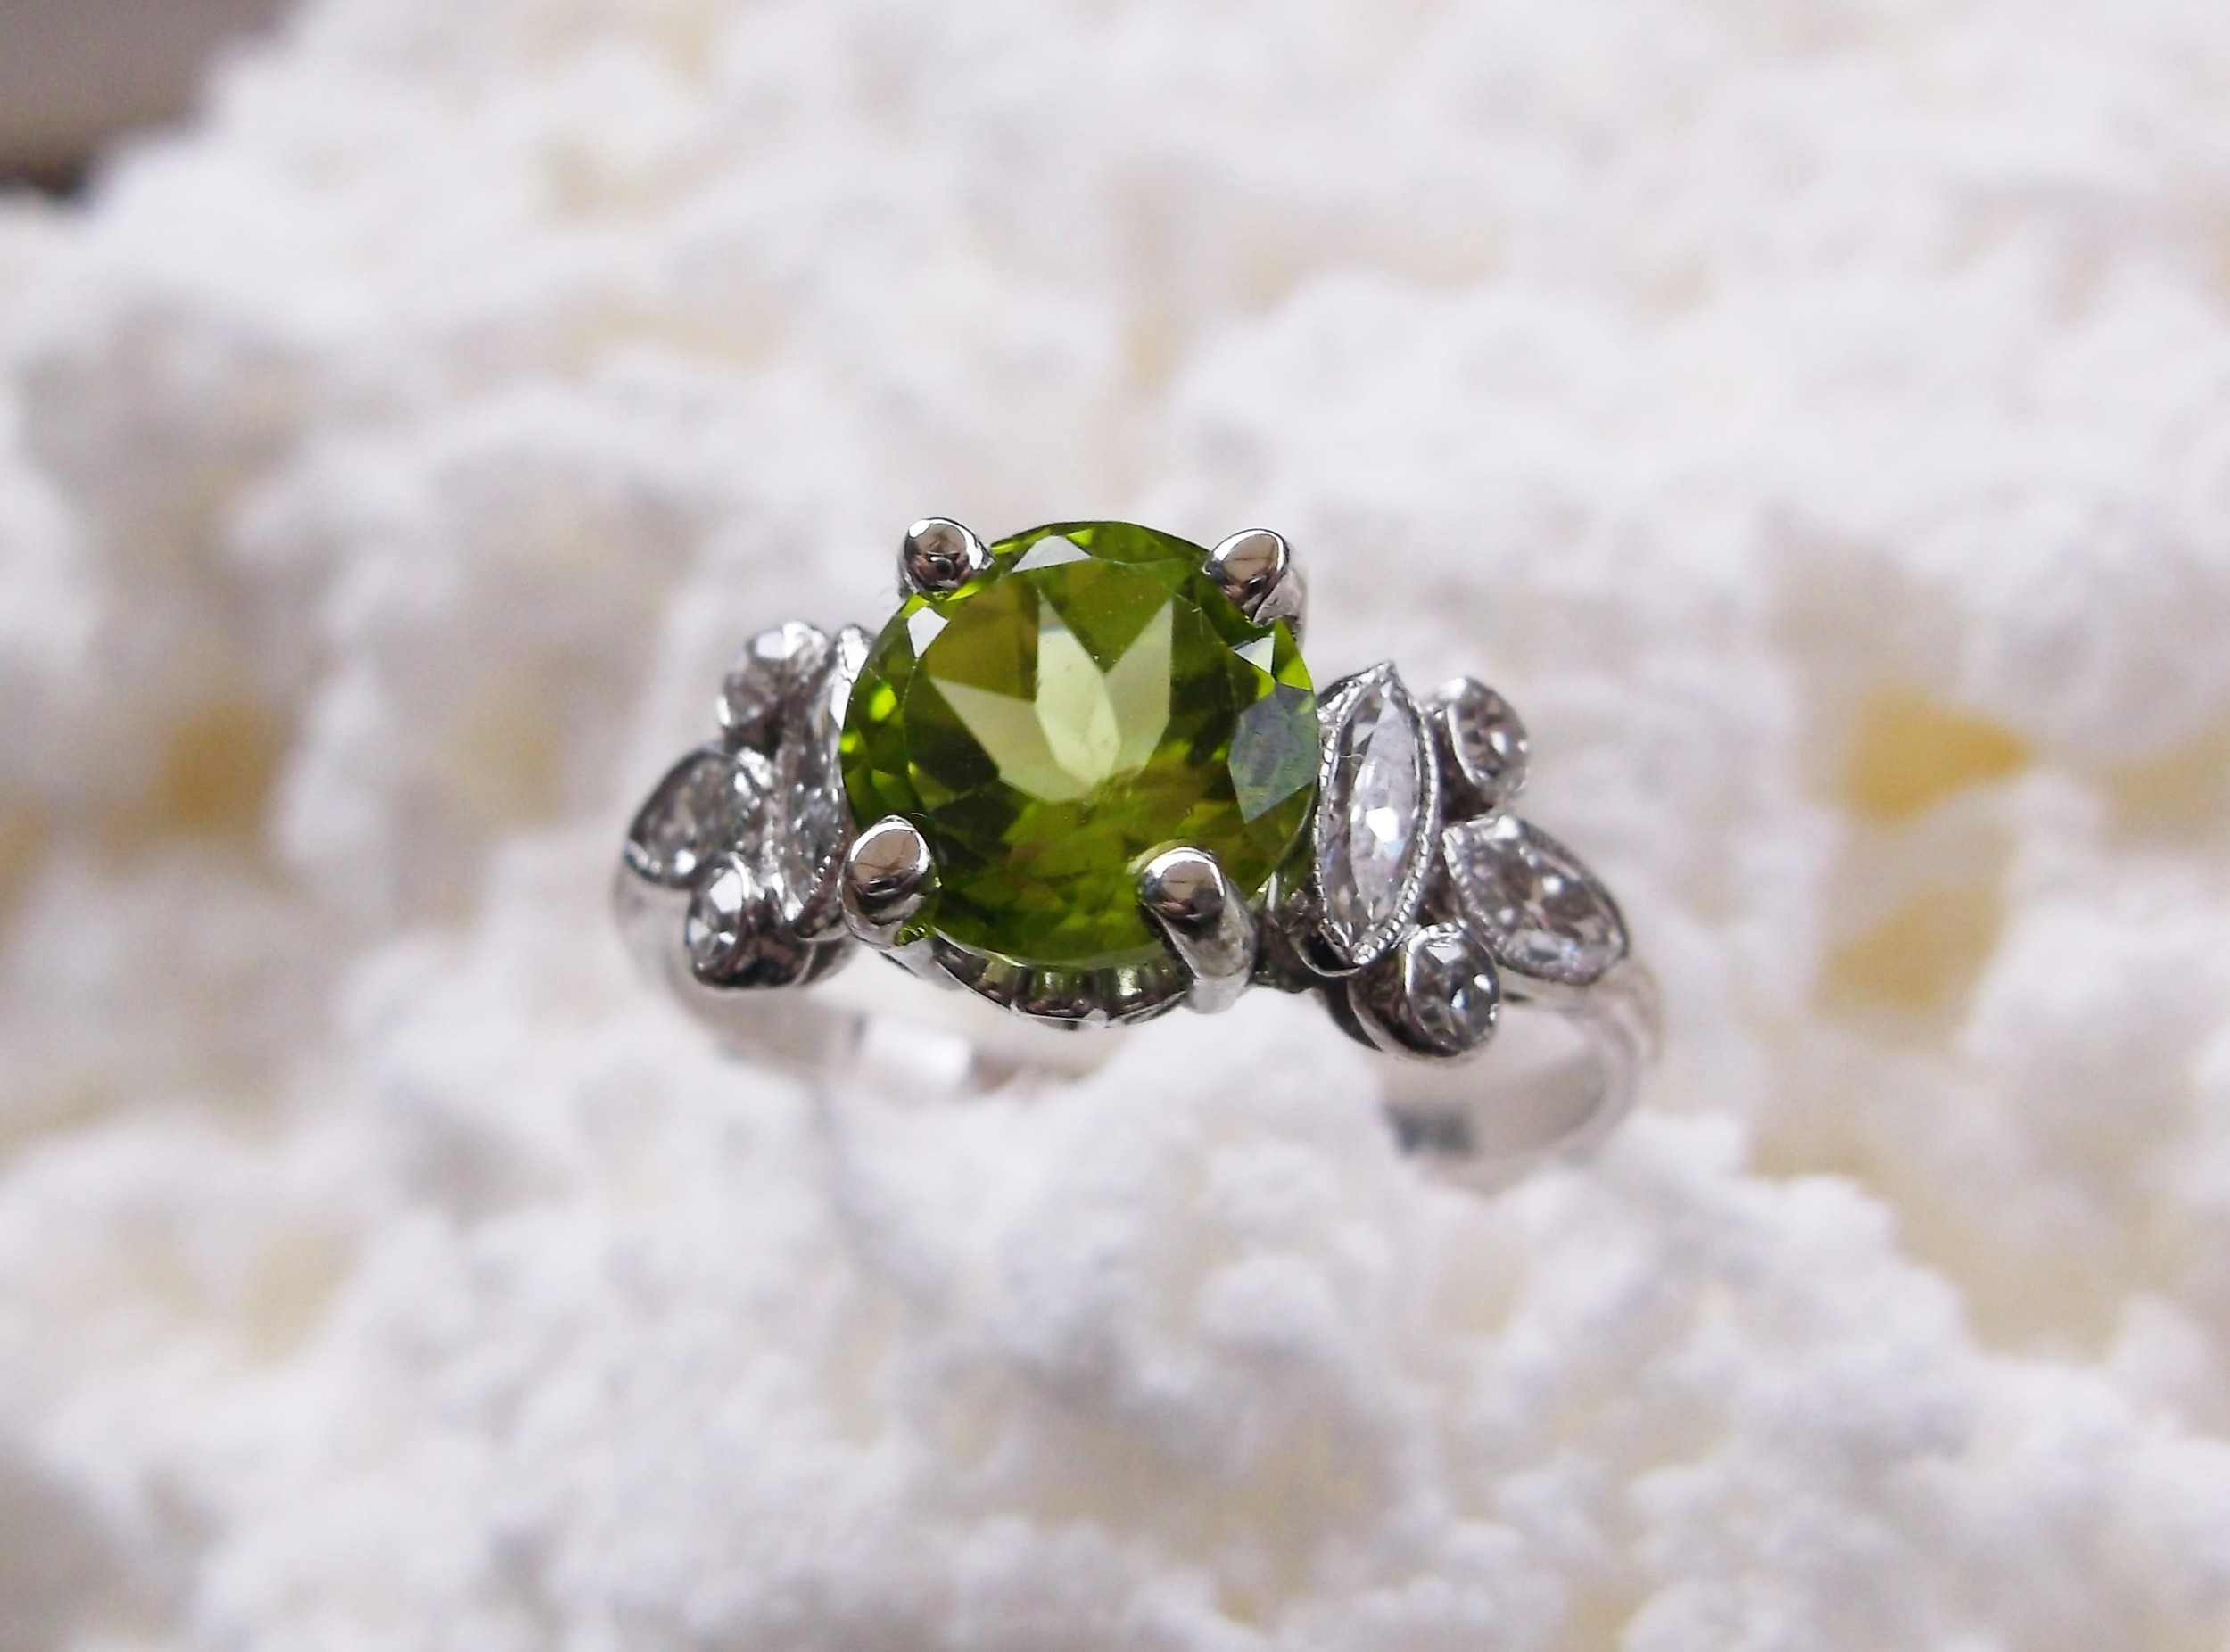 SOLD - Electric green 1.36 carat peridot with 0.40 carats total weight in diamonds set in platinum.